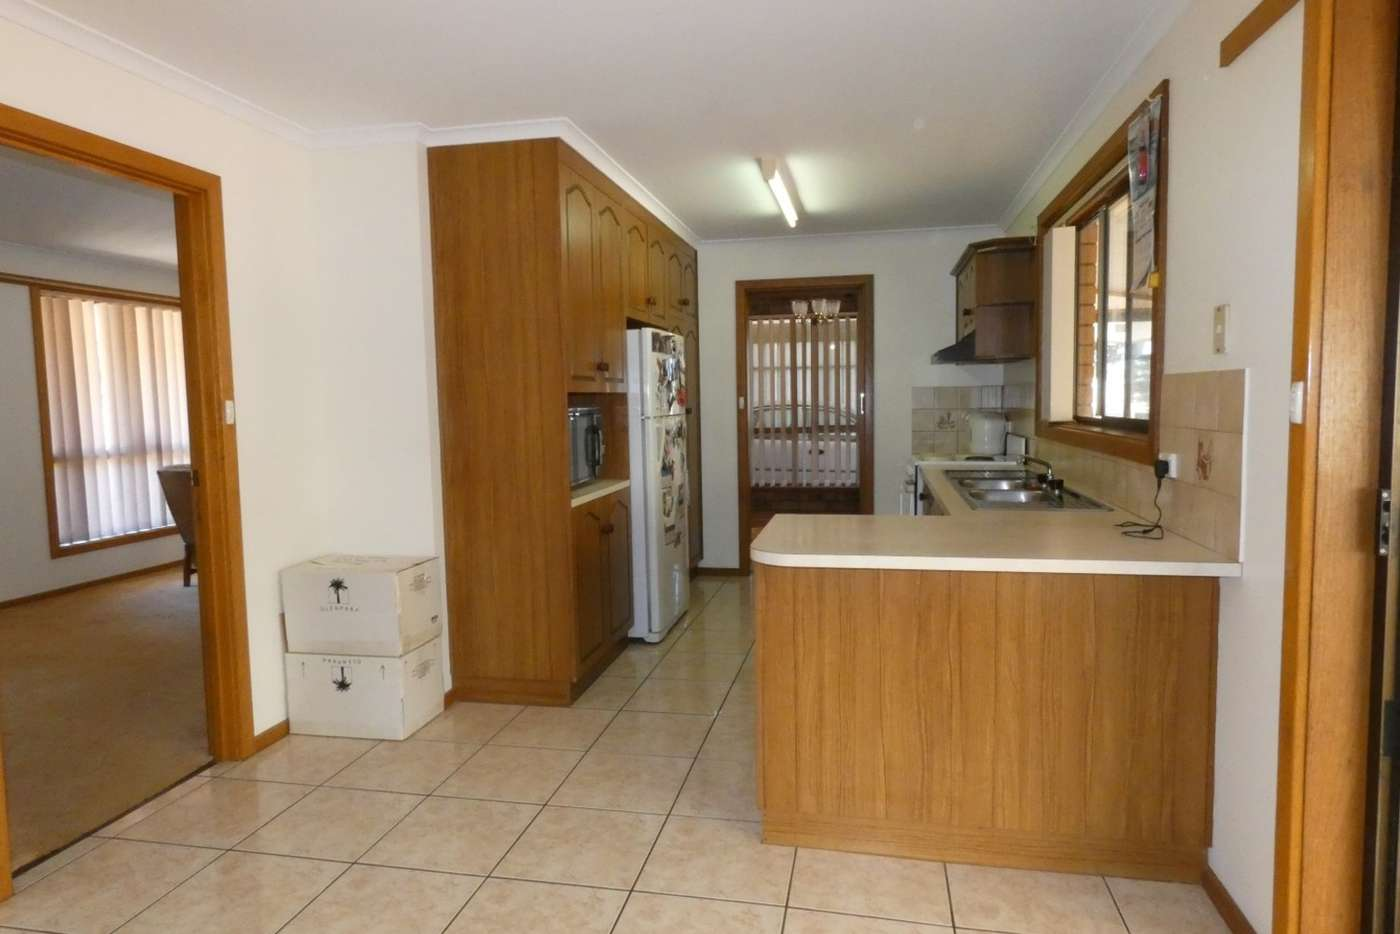 Fifth view of Homely house listing, 3 Park Terrace North, Edithburgh SA 5583